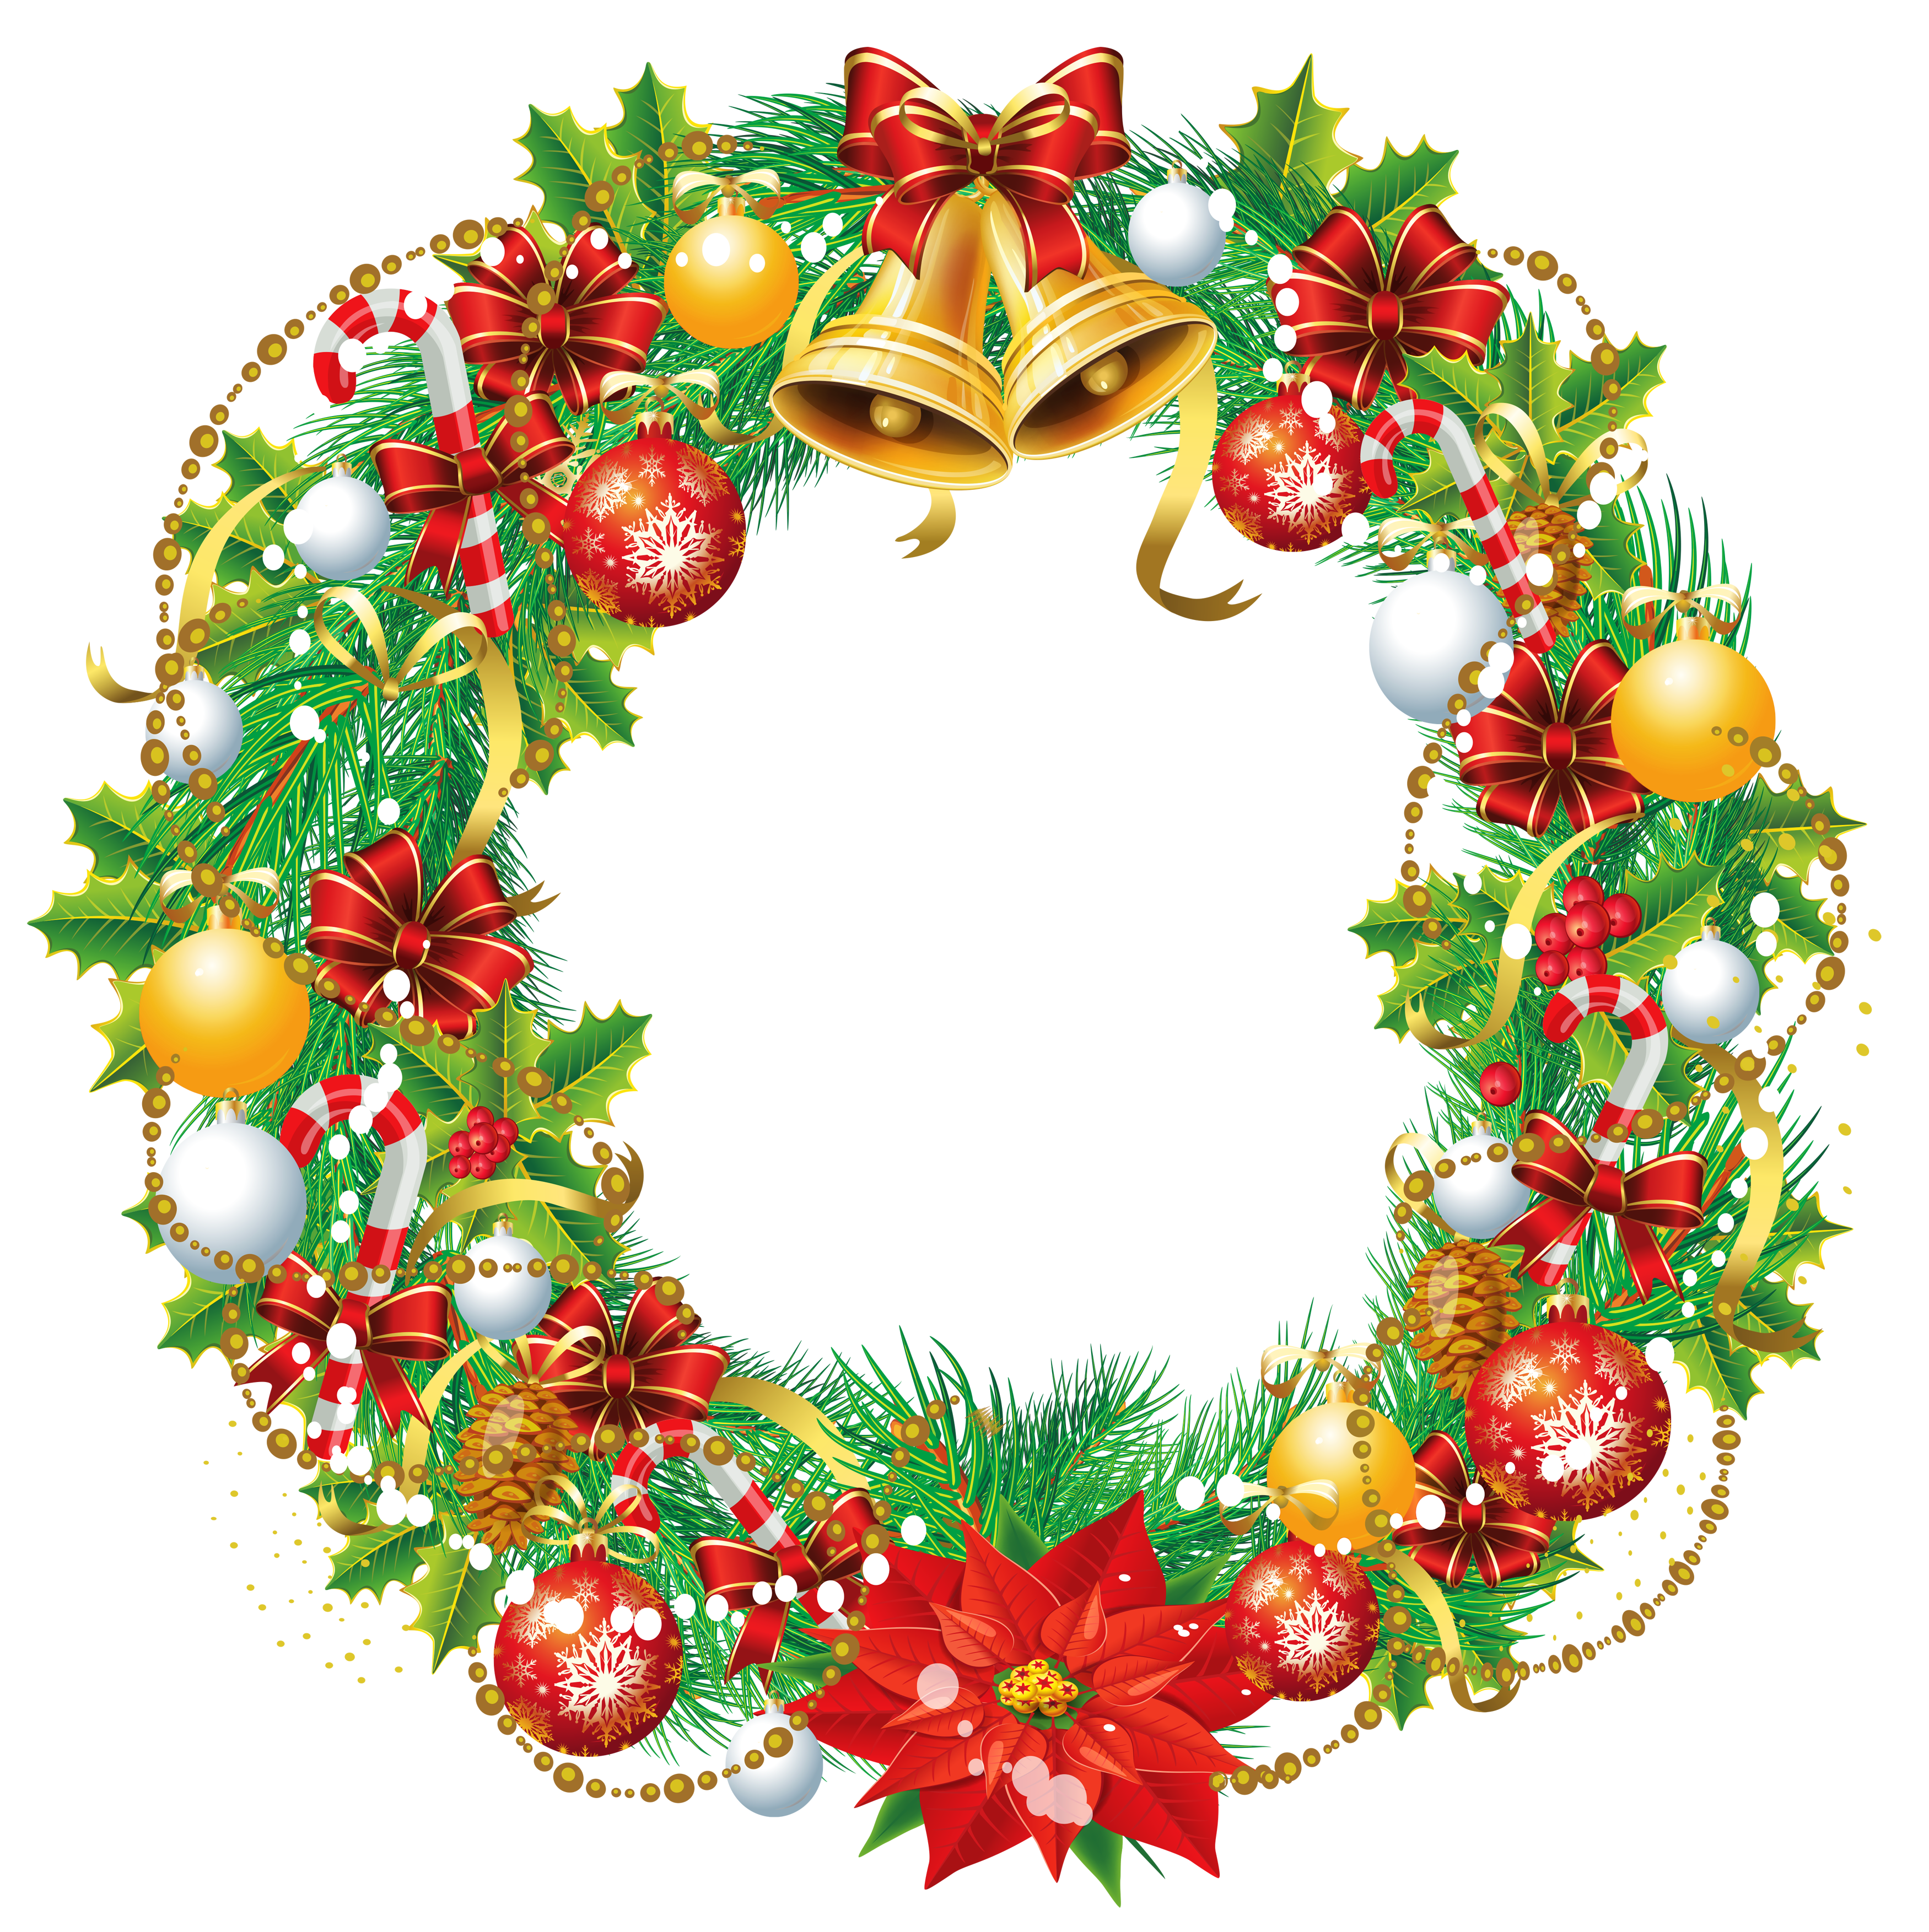 Hawaiian clipart wreath. Transparent christmas png picture